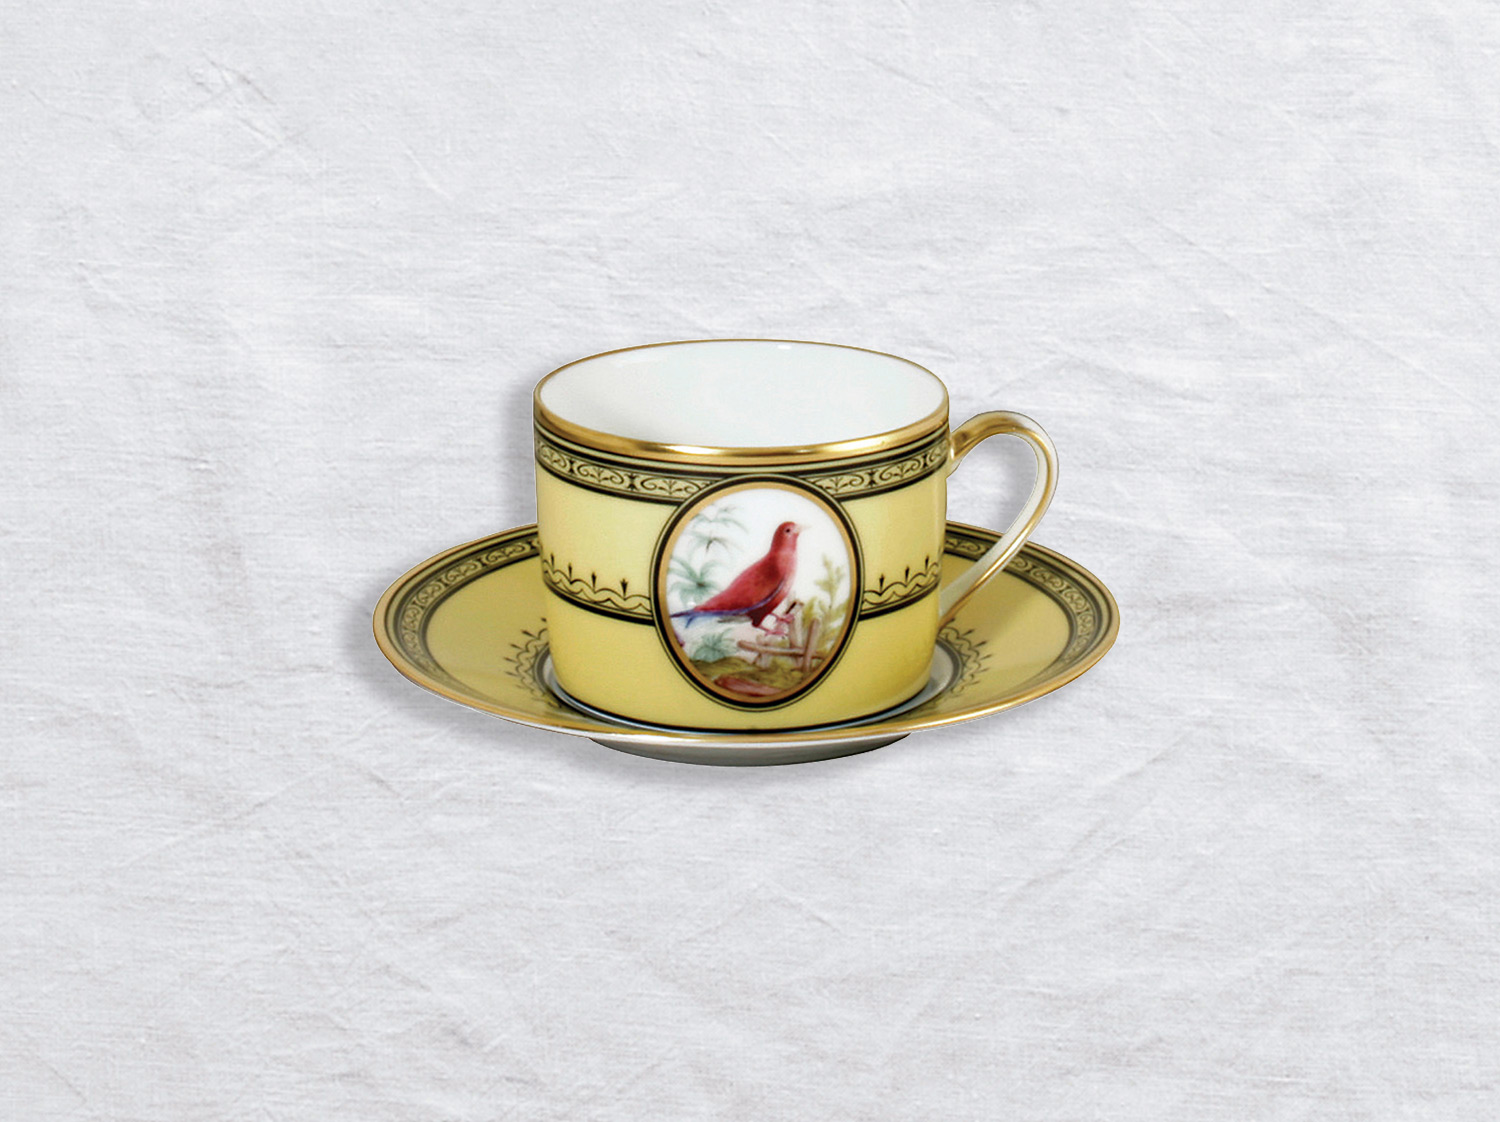 China Tea cup and saucer Le rolle de Madagascar 5 oz of the collection Le rolle de madagascar | Bernardaud